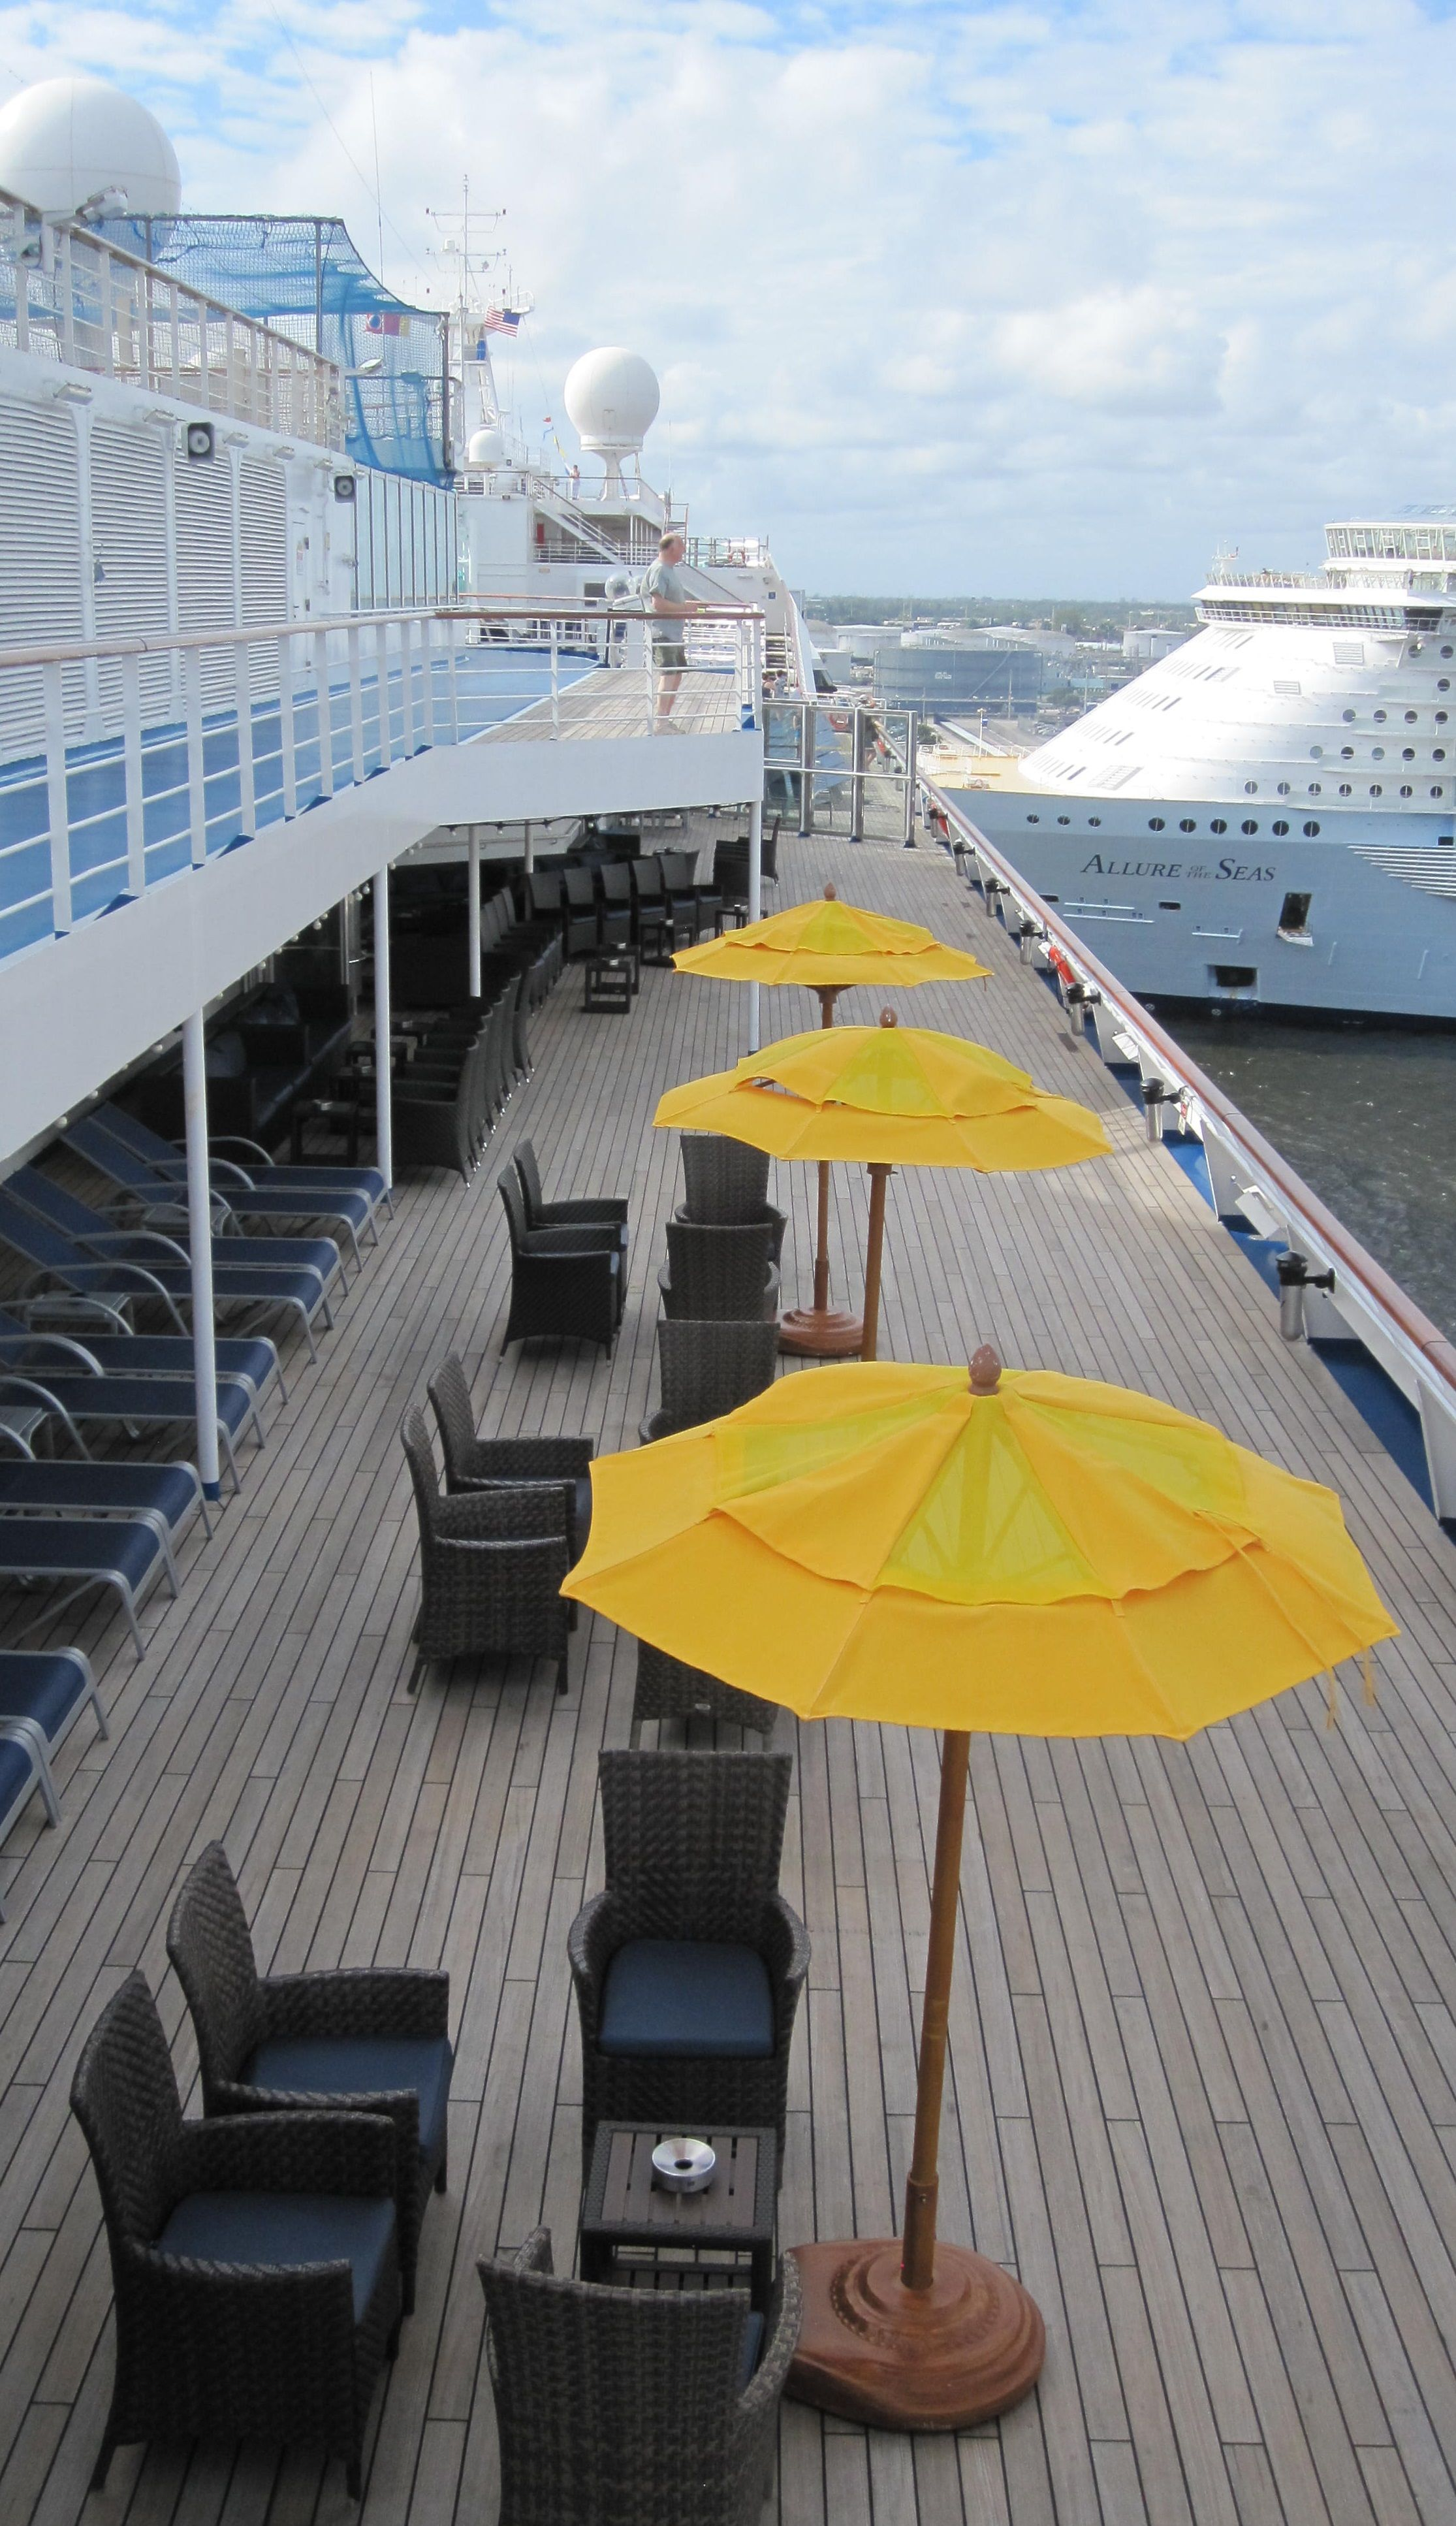 Carnival Conquest Balcony Room Pictures – Best Balcony Design ...